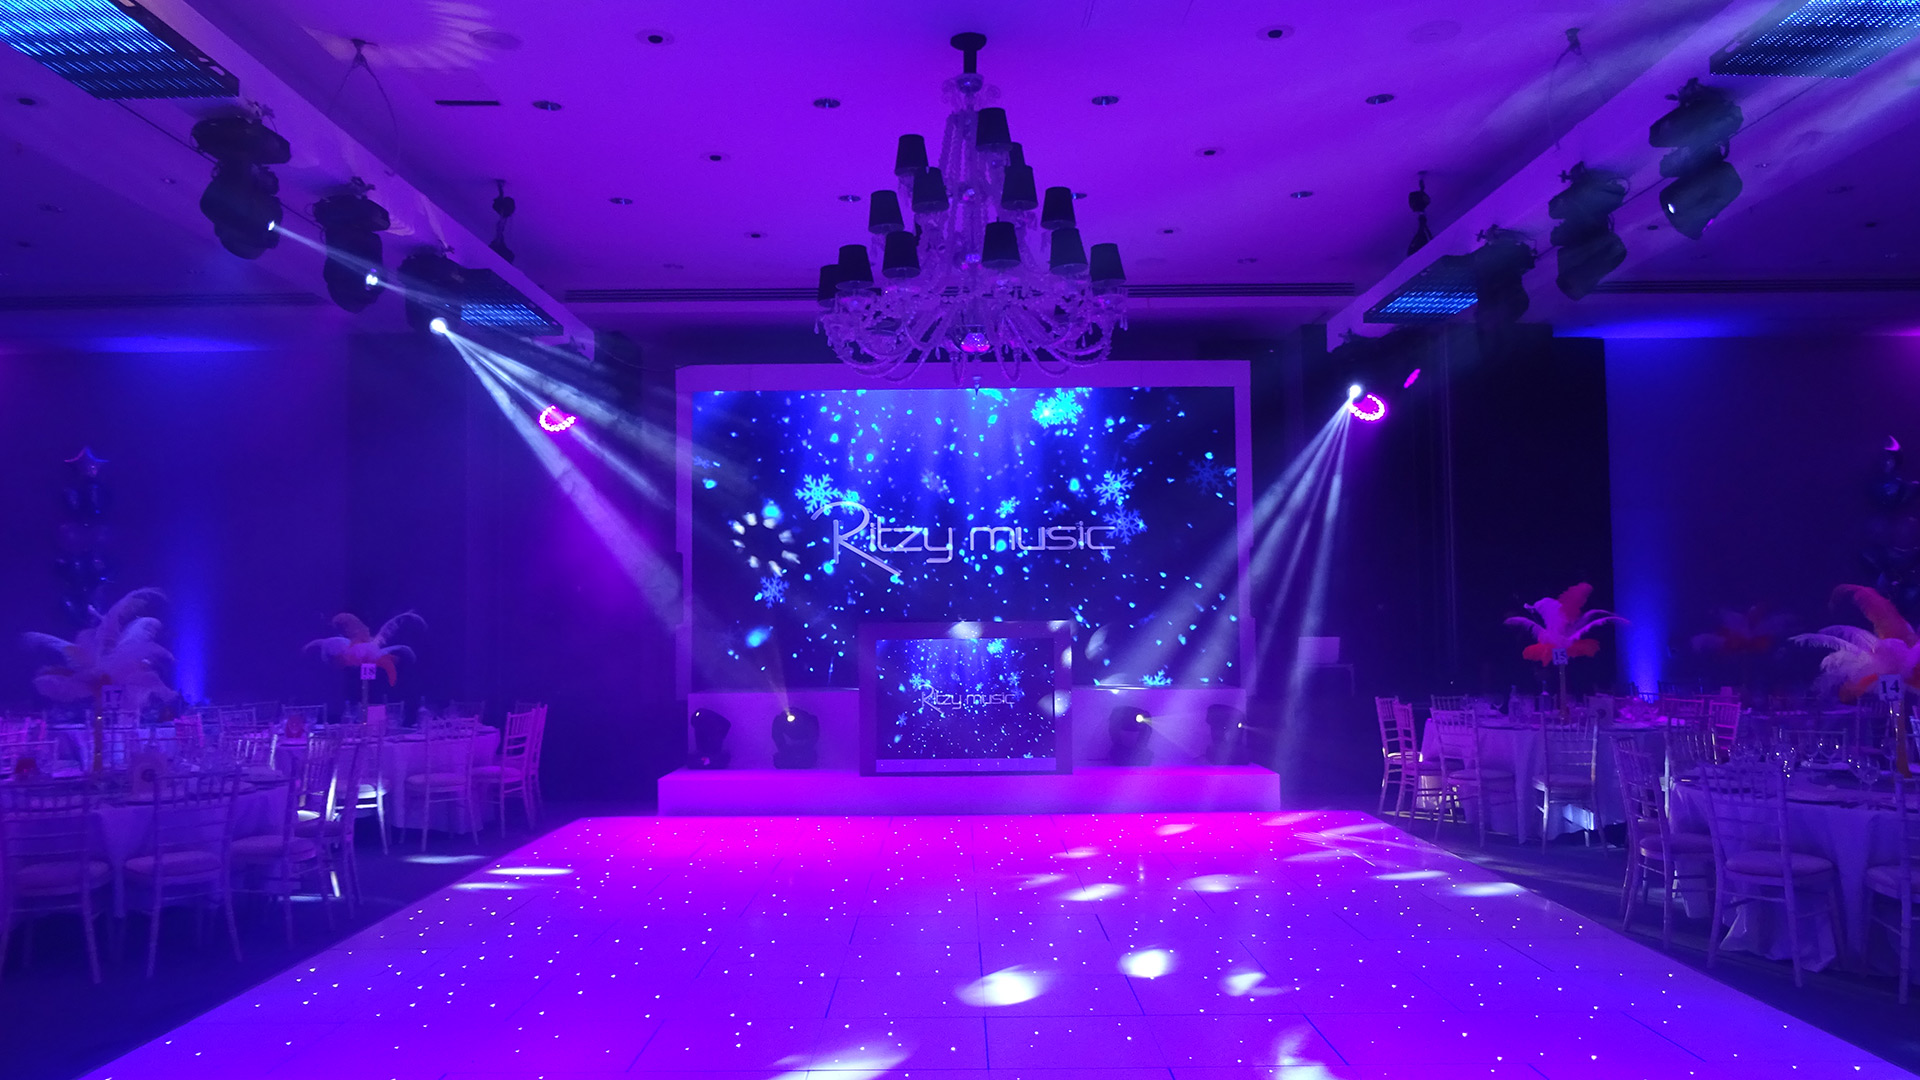 Ritzy_Music_Lighting